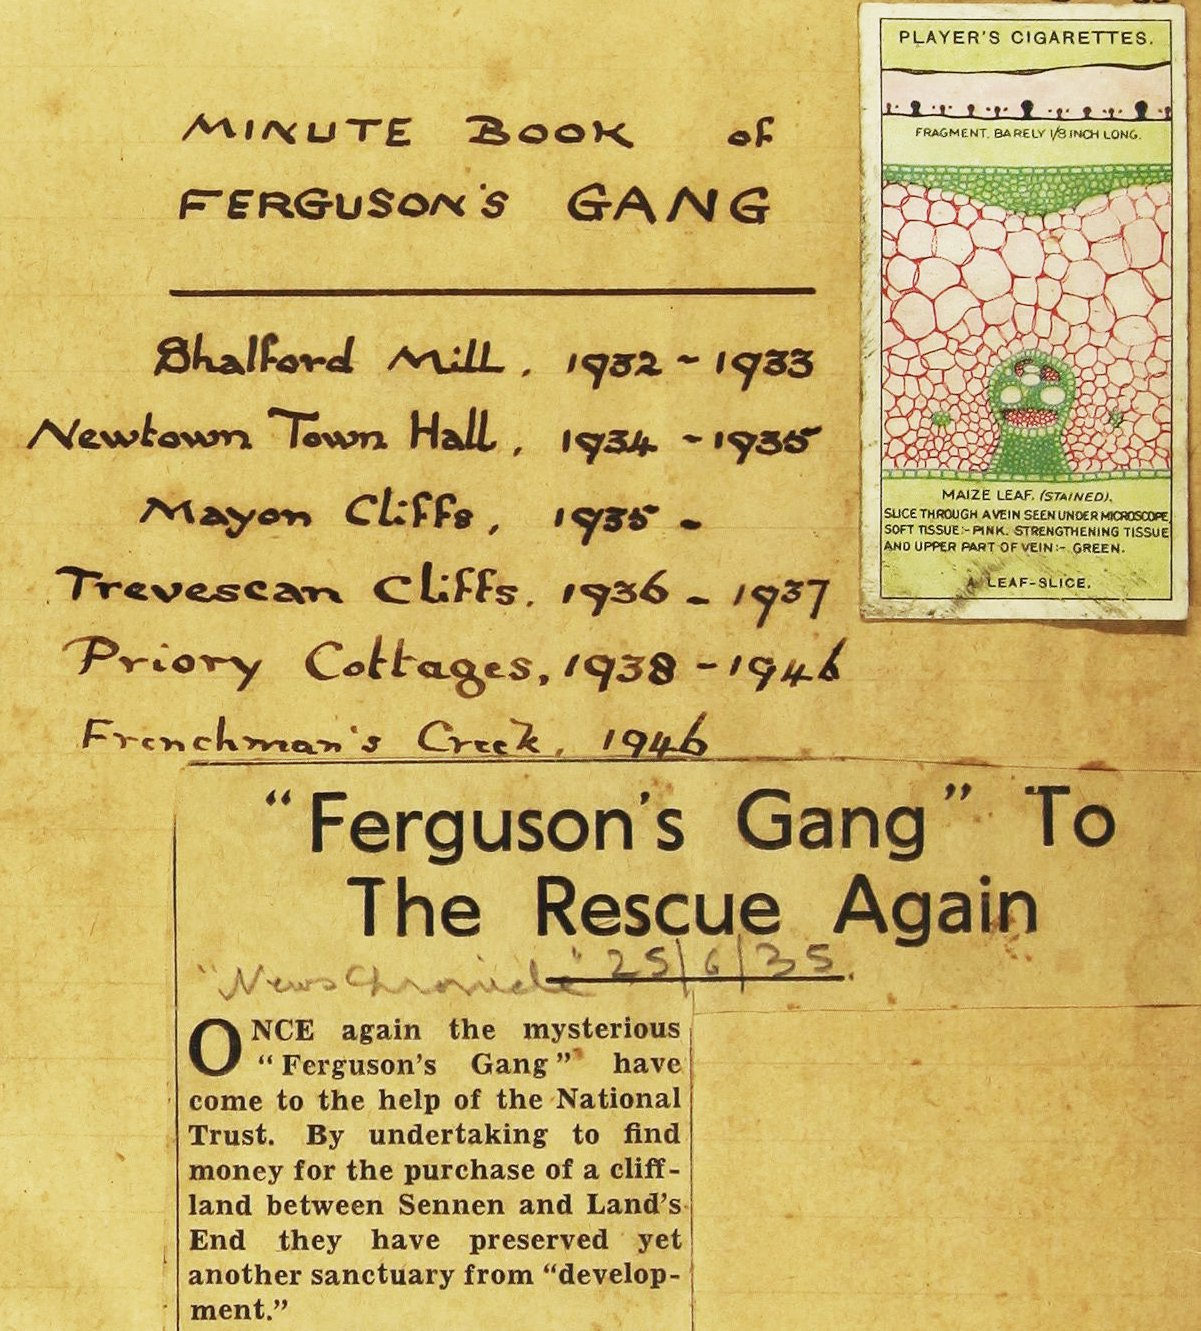 Fergusons gang minute book with Shalford Mill, Newtown Old Town Hall, Mayon Cliffs, Trevescan Cliffs, Priory Cottages, Frenchman's Creek